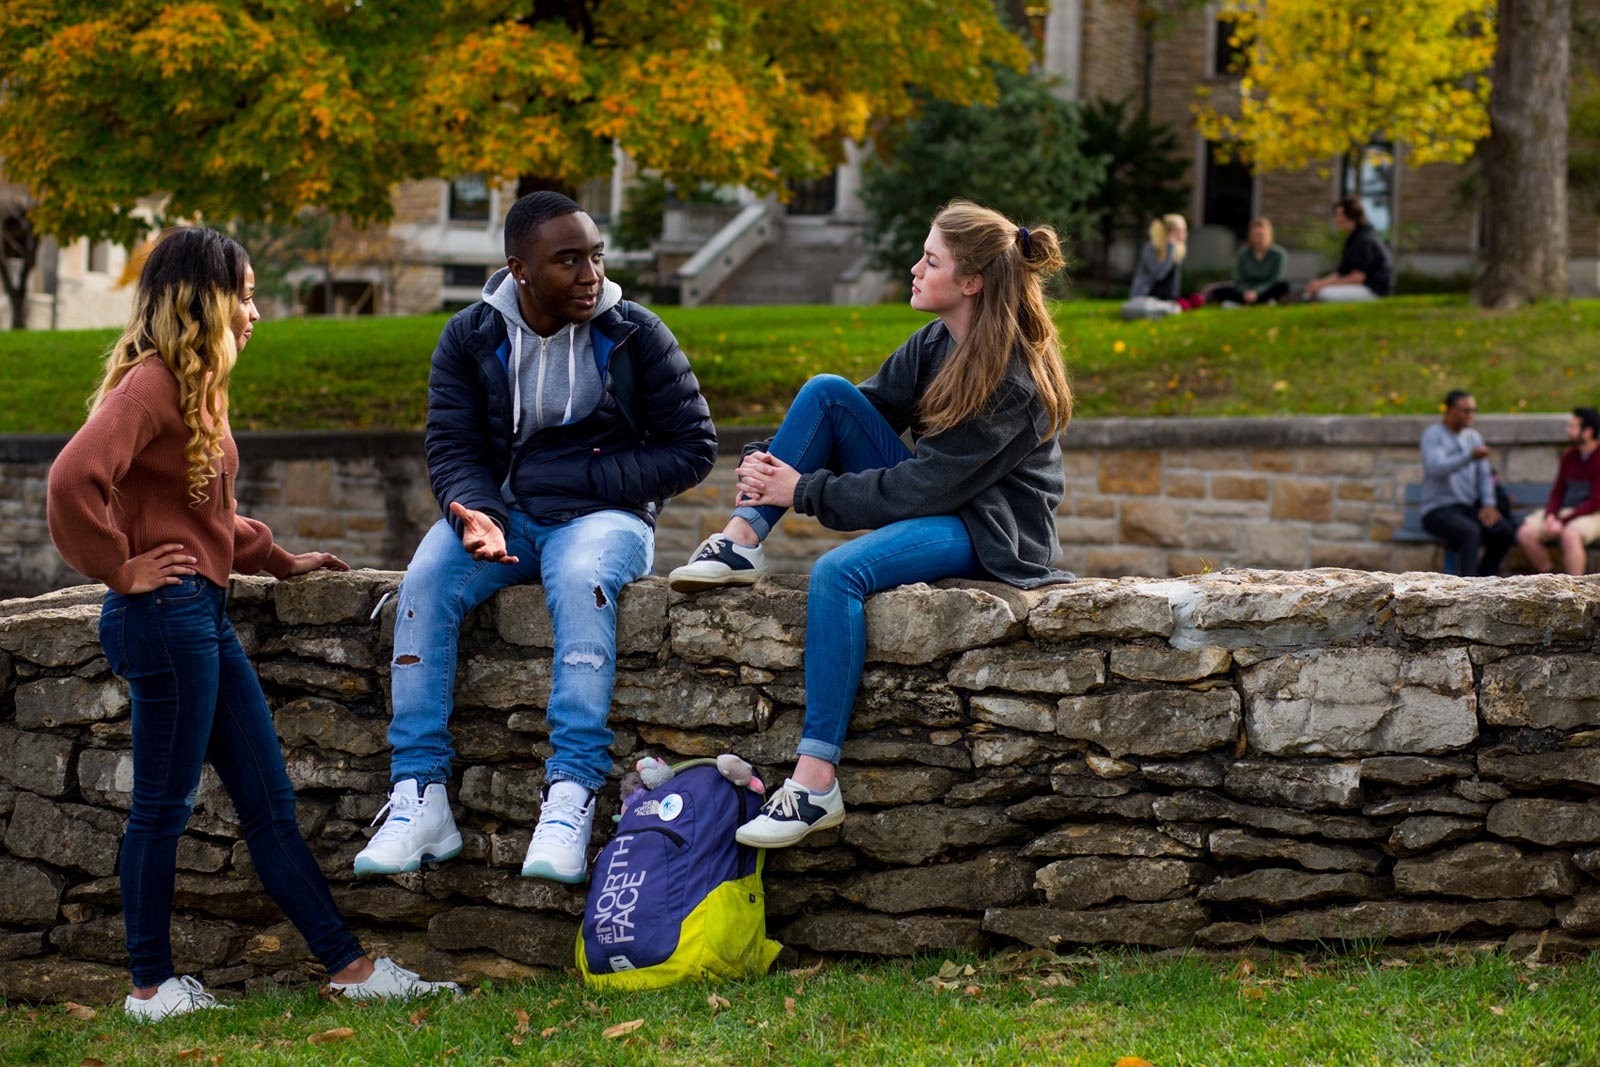 UMKC students sitting on a wall